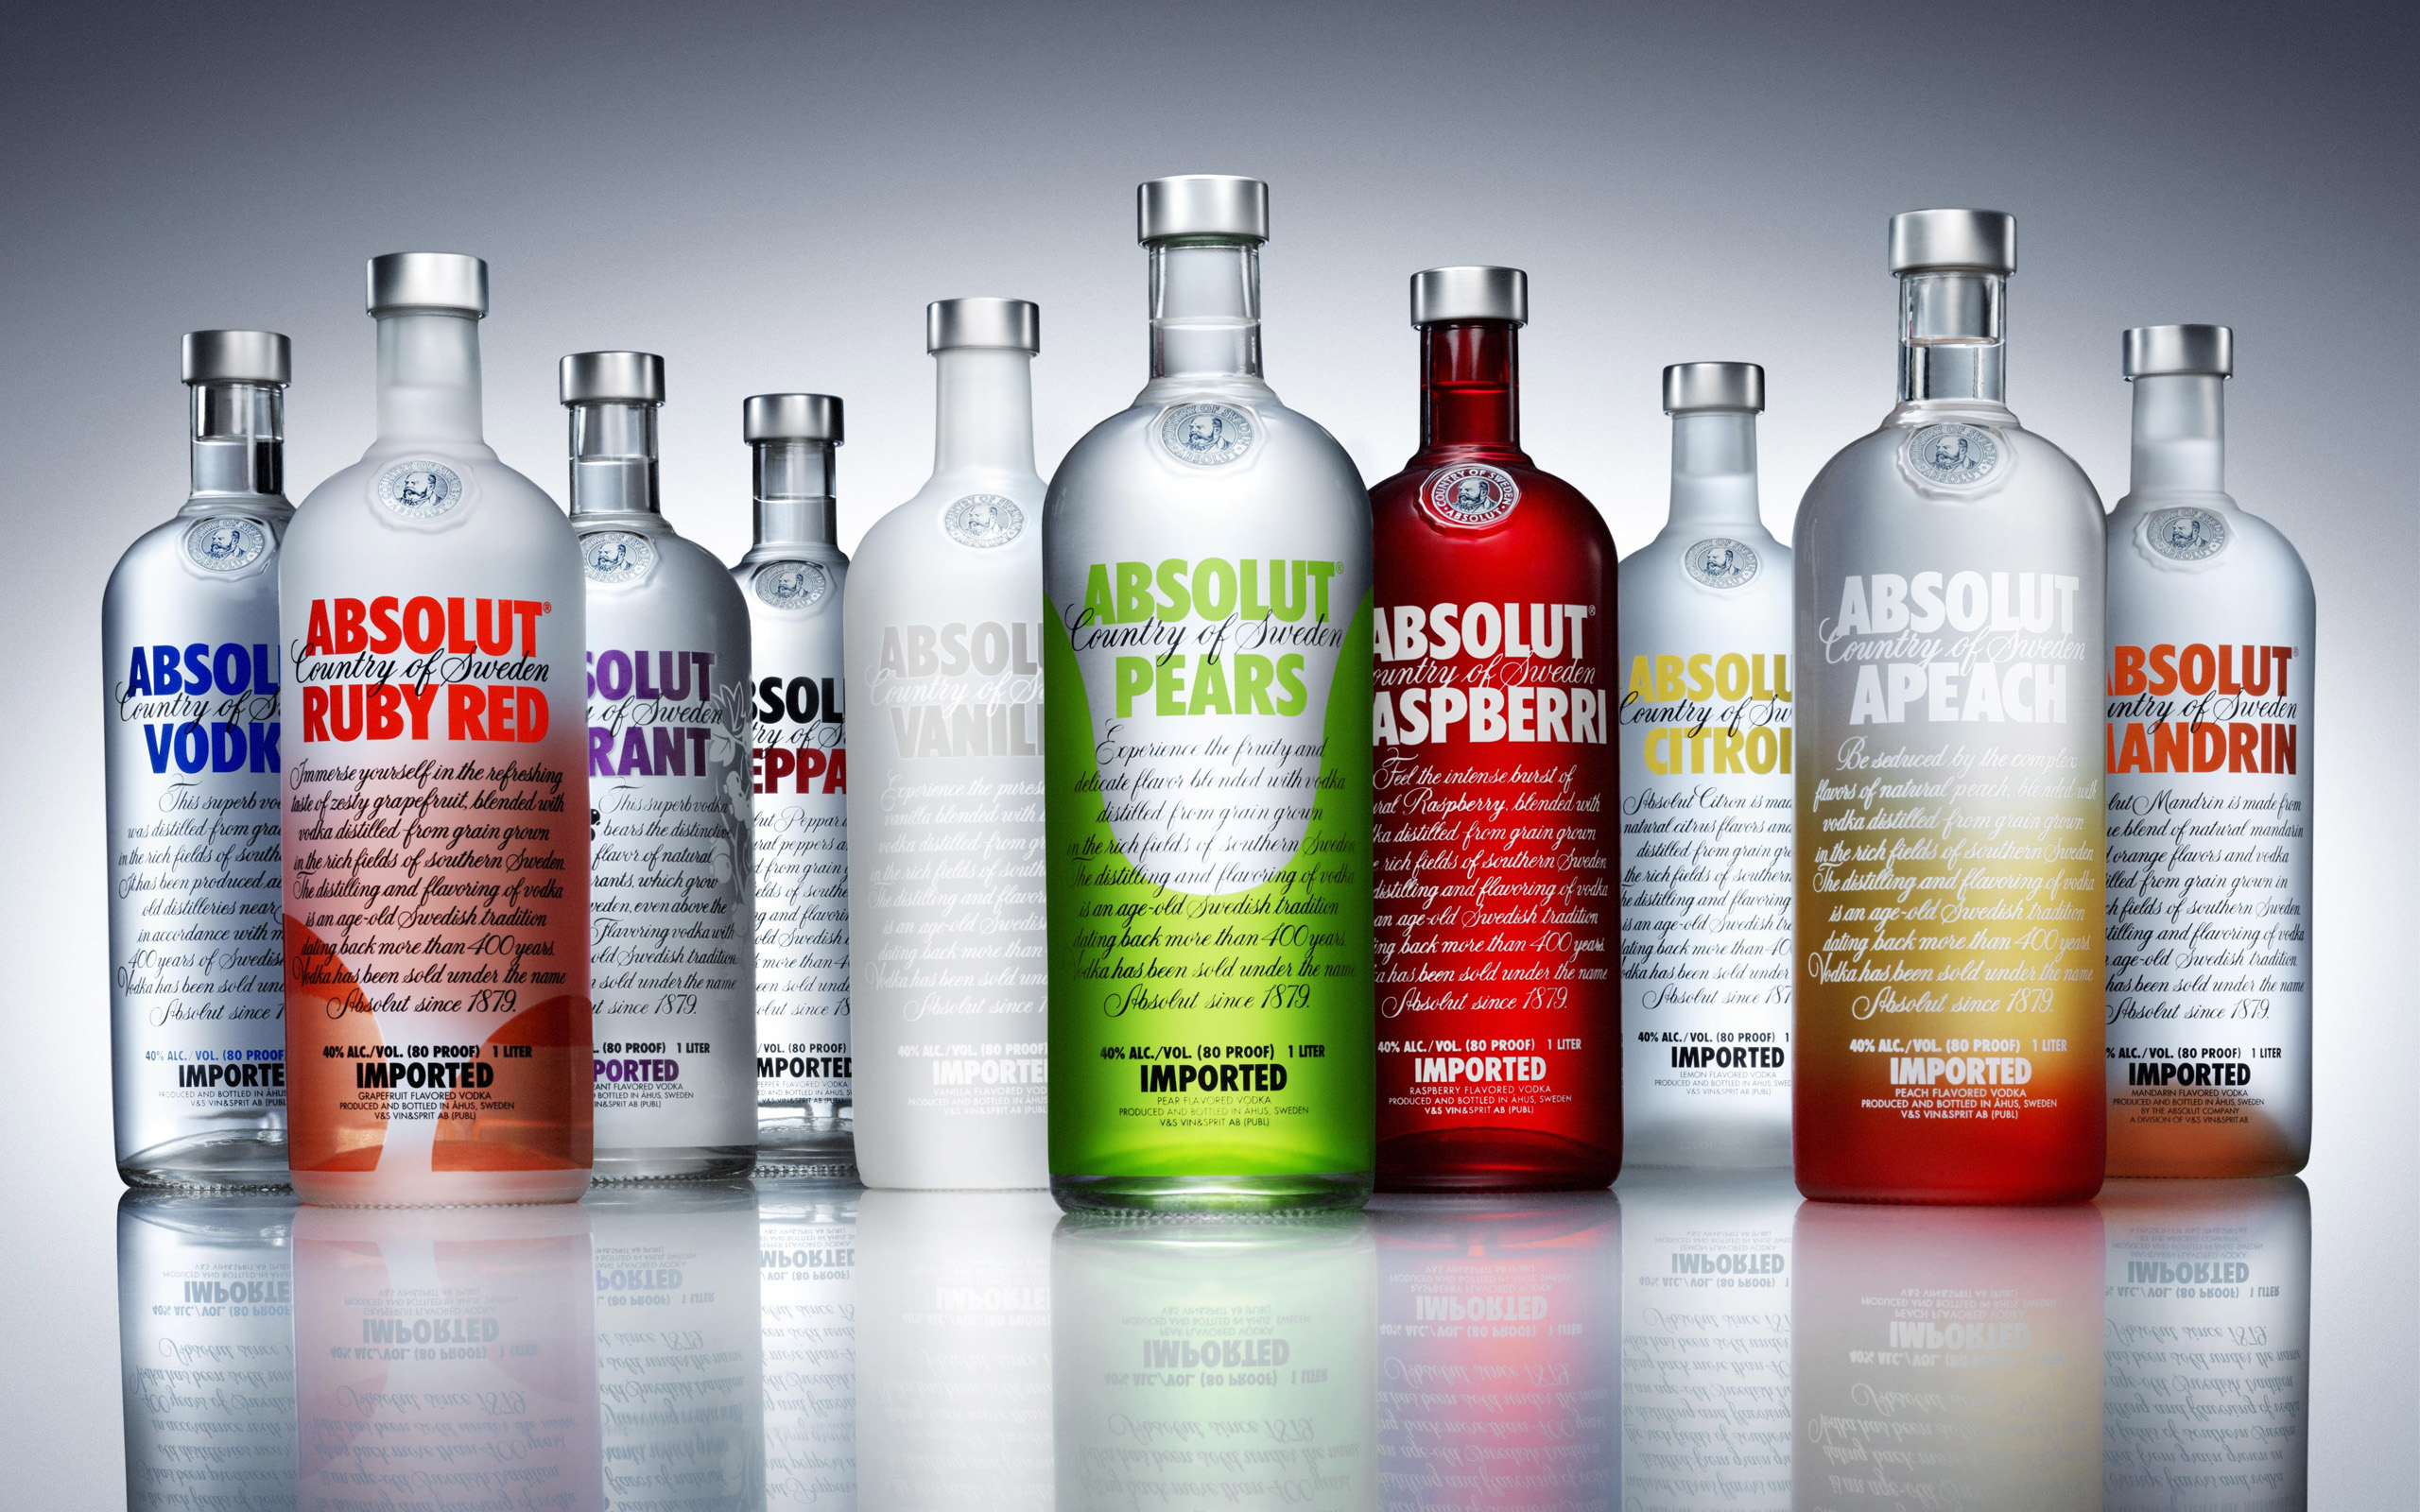 Wild Animals You Are Viewing Vodka Bottles Alcohol Absolut Drinks Liquor 1115206 Wallpaper wallpaper